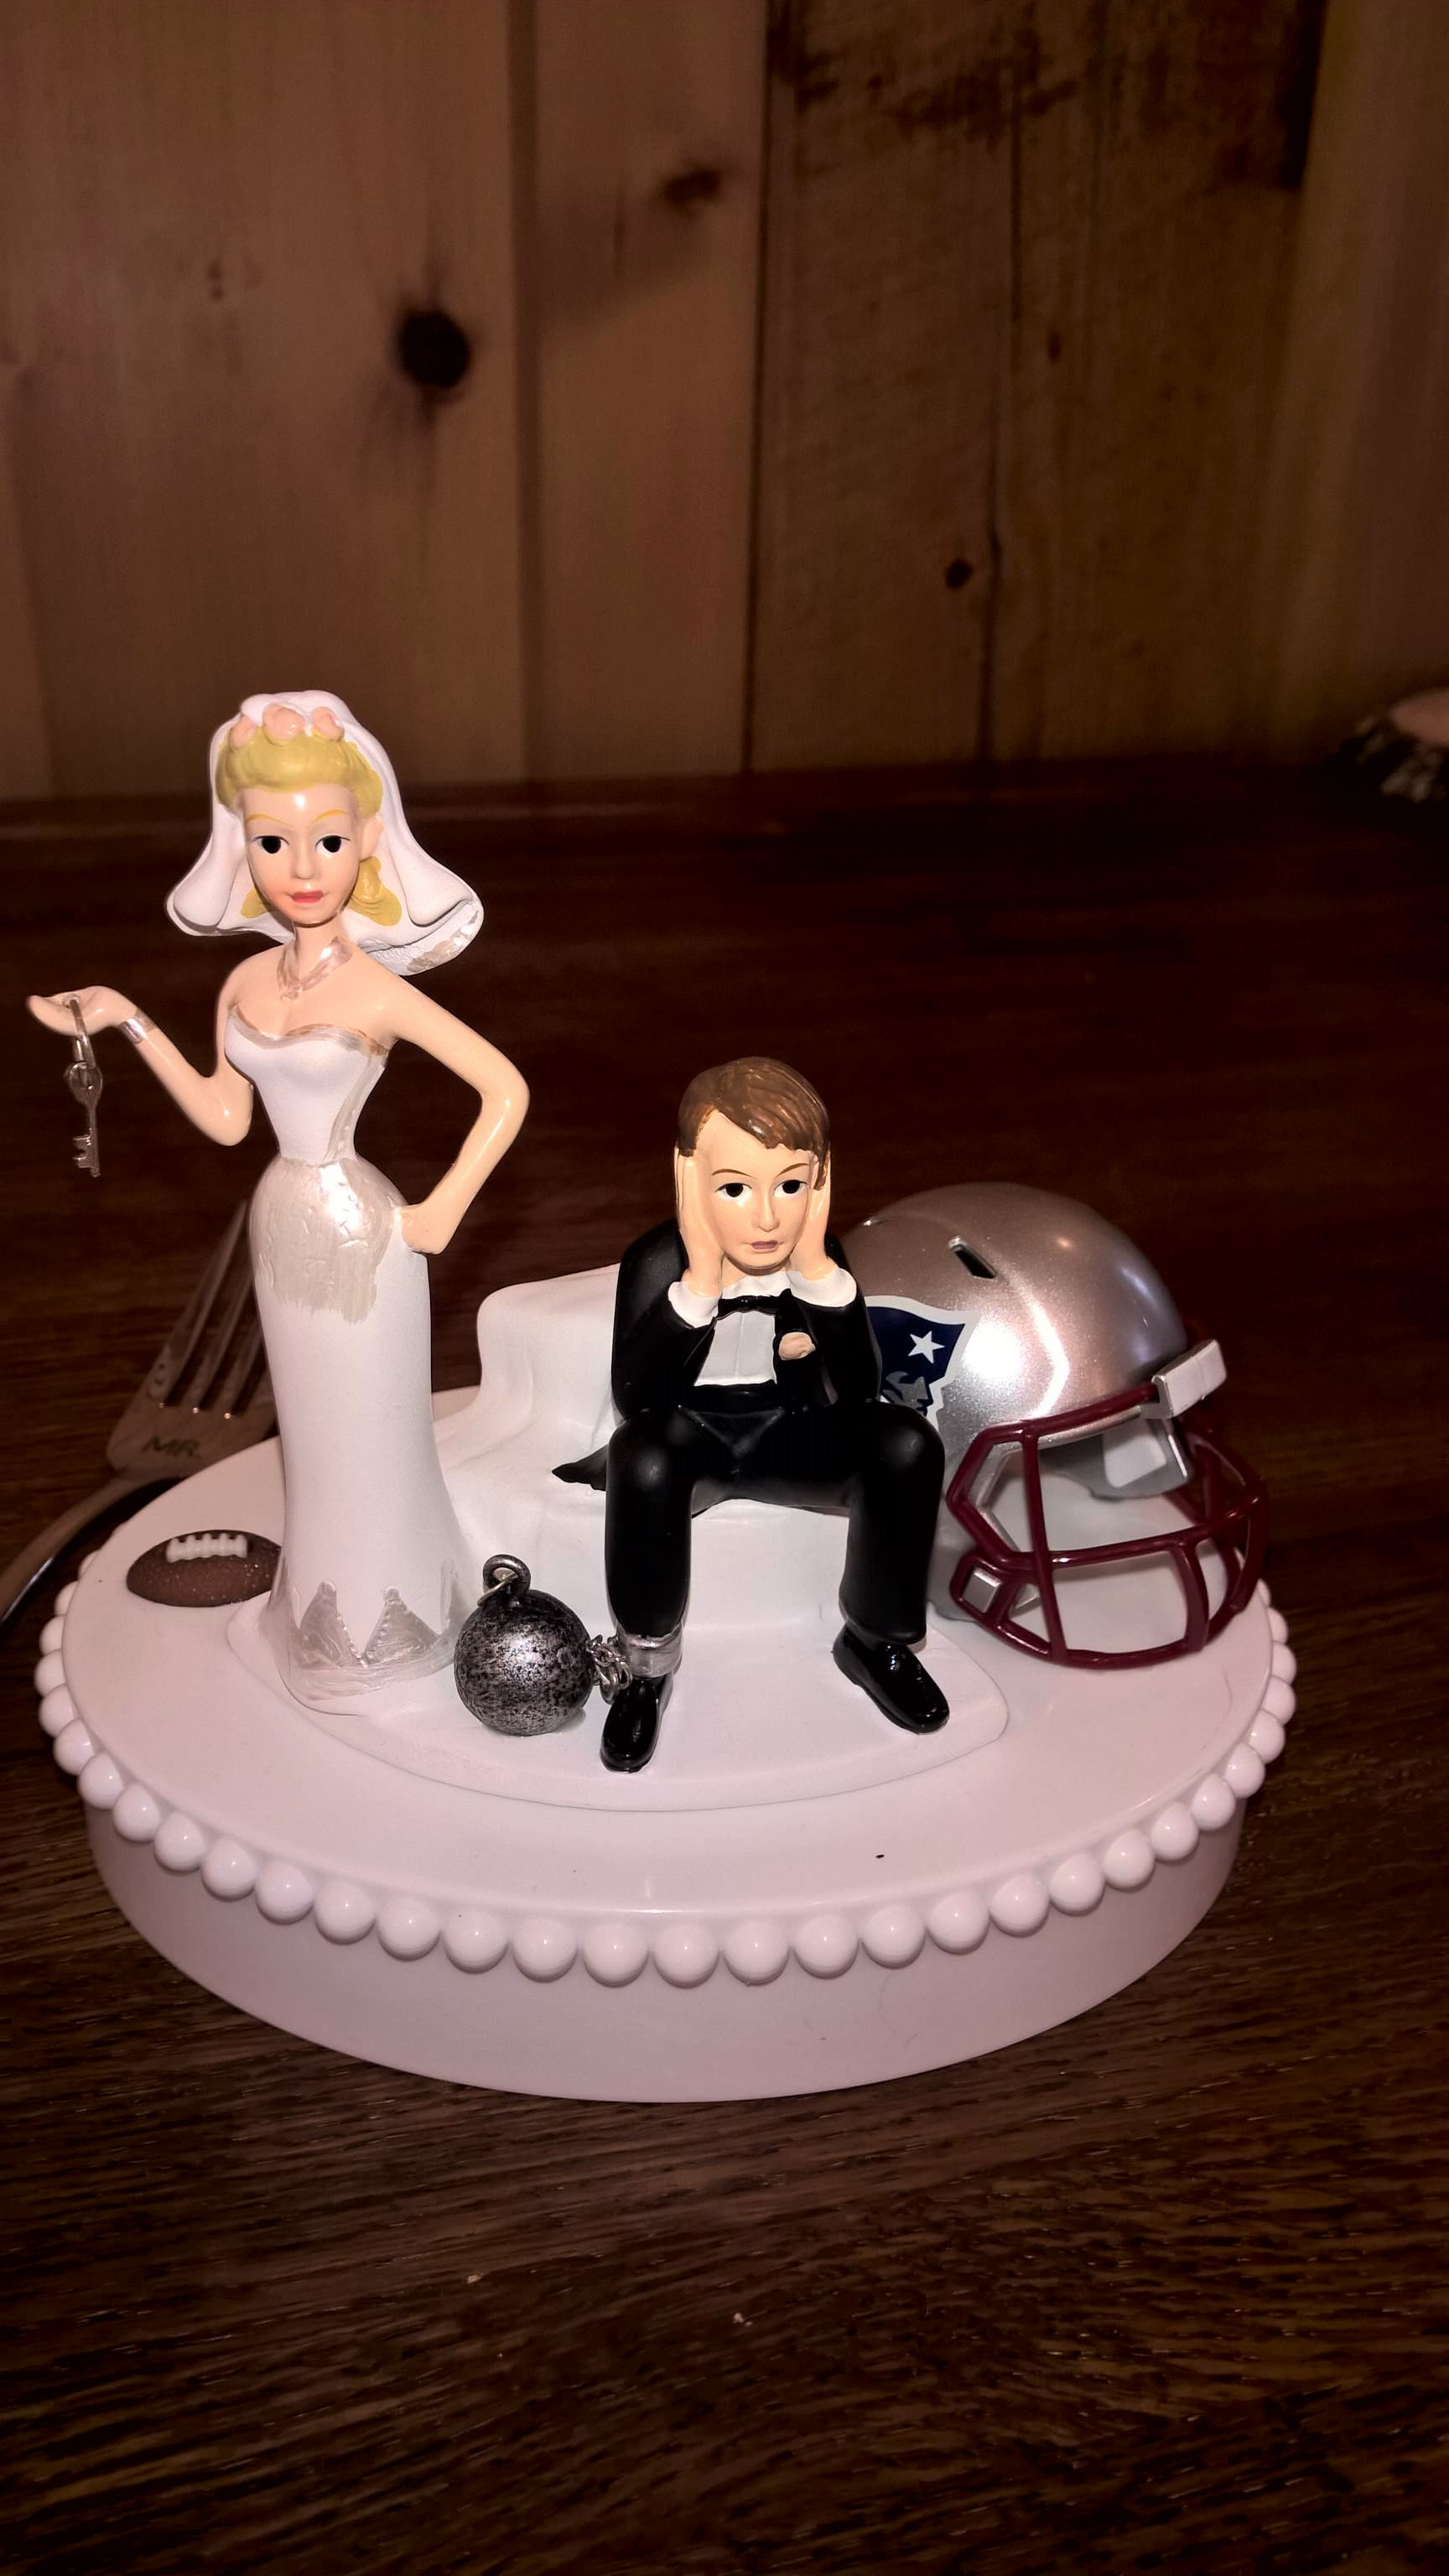 Cake topper with bride and unhappy groom with ball and chain on his ankle.